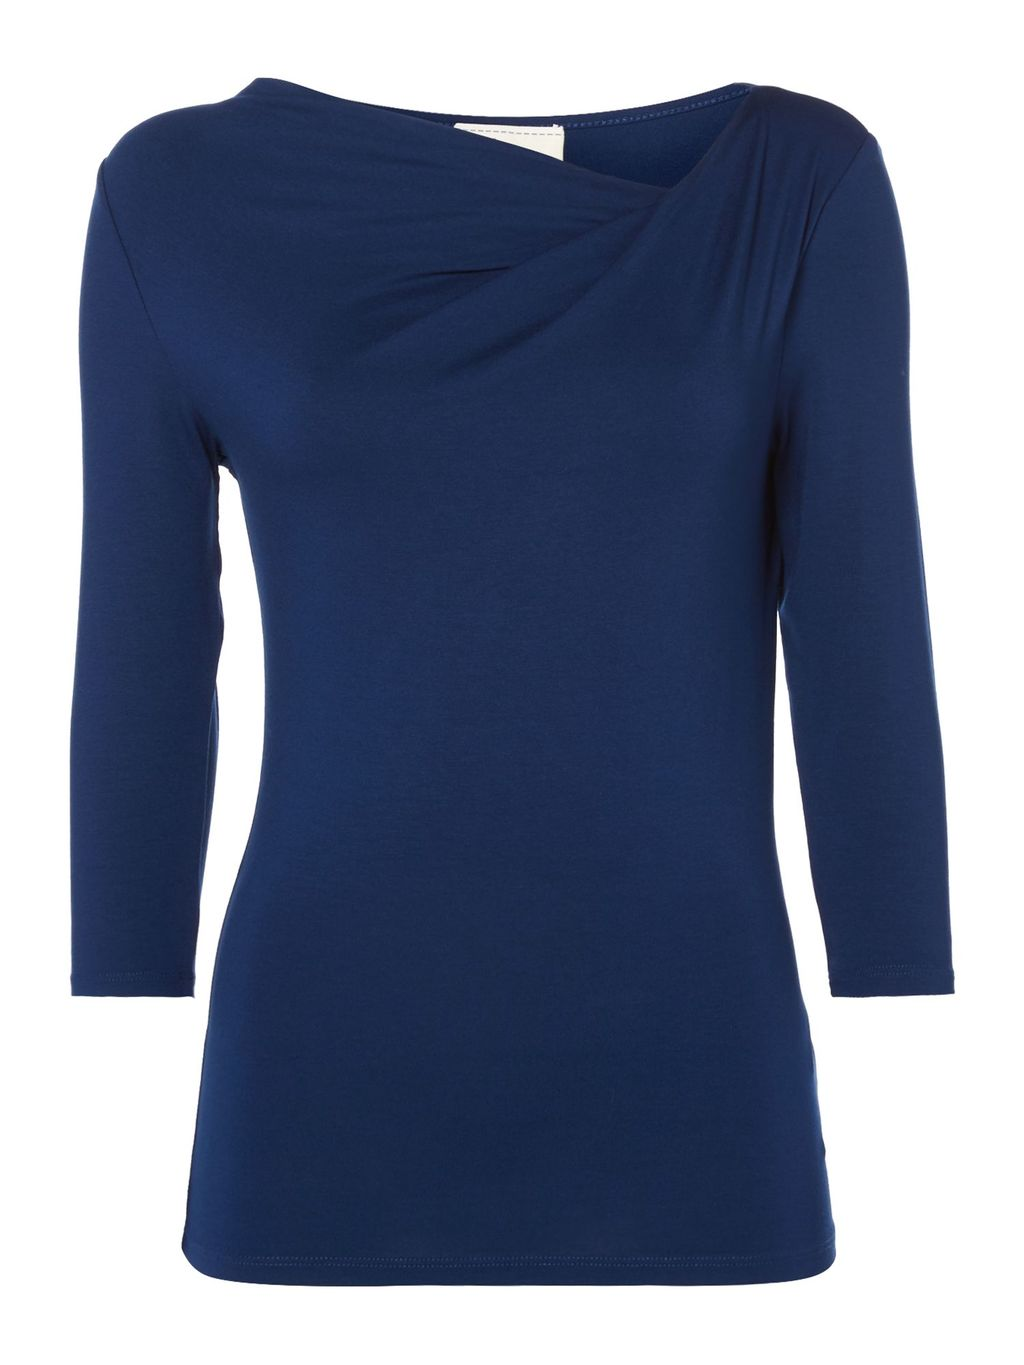 Twist Cowl 3/4 Sleeve Jersey Top, Blue - pattern: plain; style: t-shirt; neckline: asymmetric; predominant colour: navy; occasions: casual; length: standard; fibres: cotton - stretch; fit: body skimming; sleeve length: 3/4 length; sleeve style: standard; texture group: jersey - clingy; pattern type: fabric; season: s/s 2016; wardrobe: basic